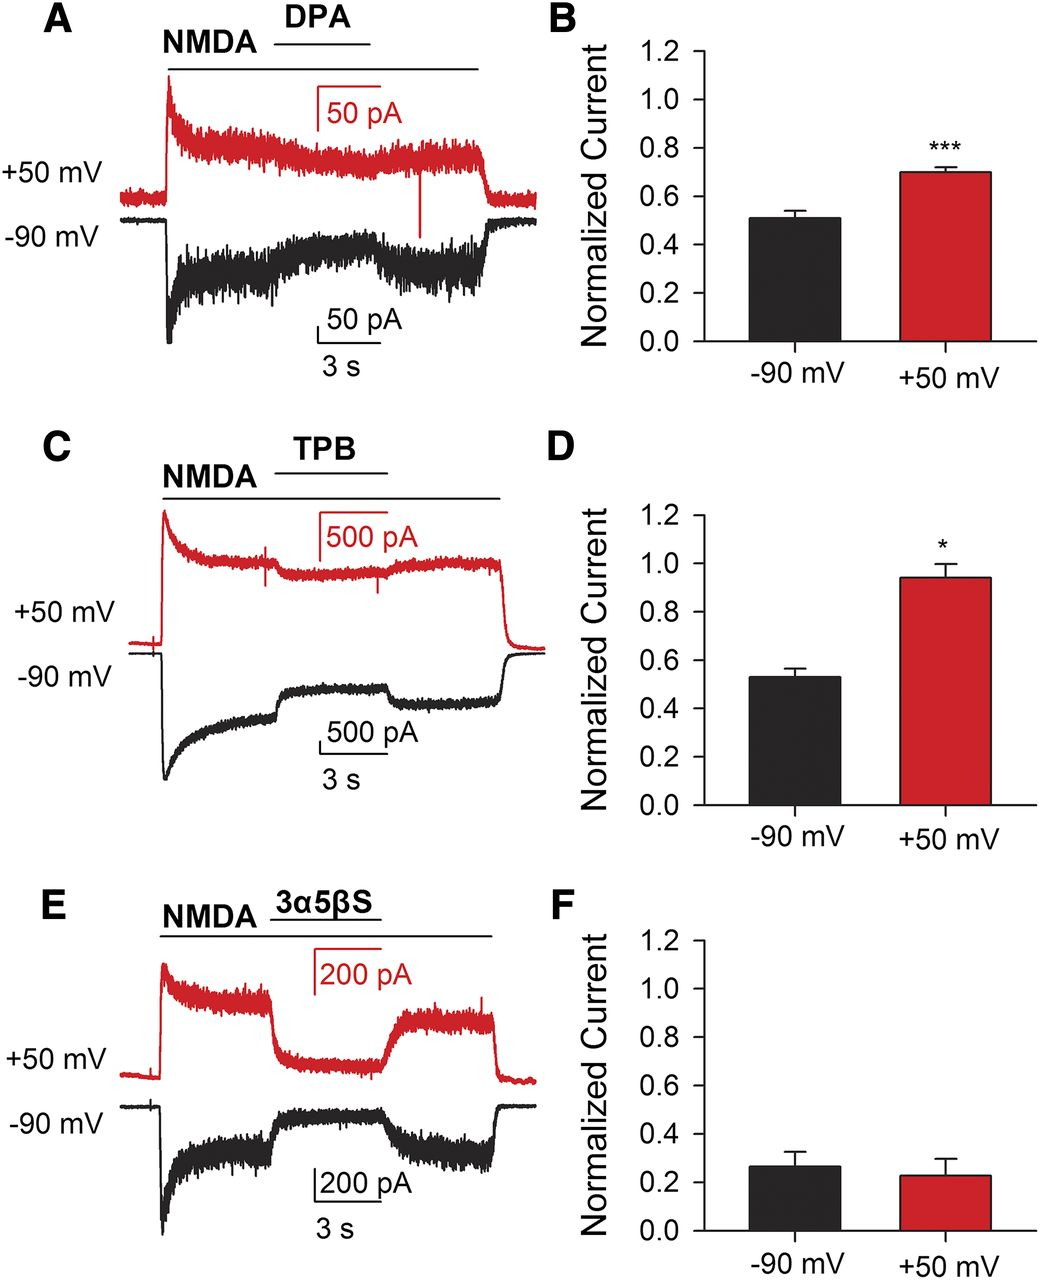 Noncompetitive Voltage Dependent Nmda Receptor Antagonism By Aa One K A Compact Current Output Integrated Amplifier Download Figure